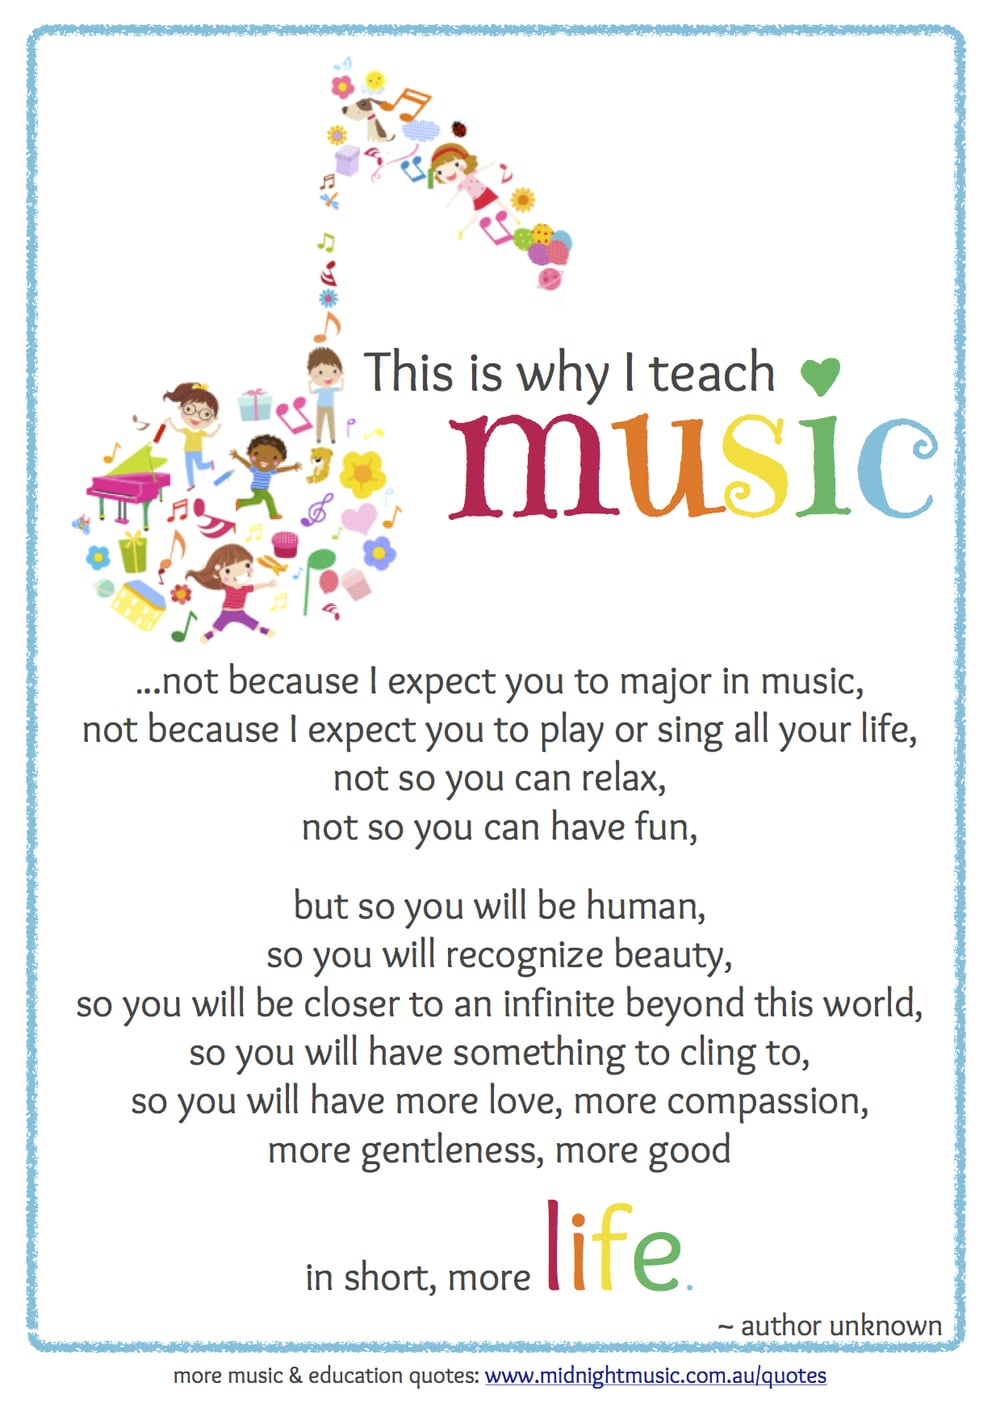 Why-teach-music.jpg